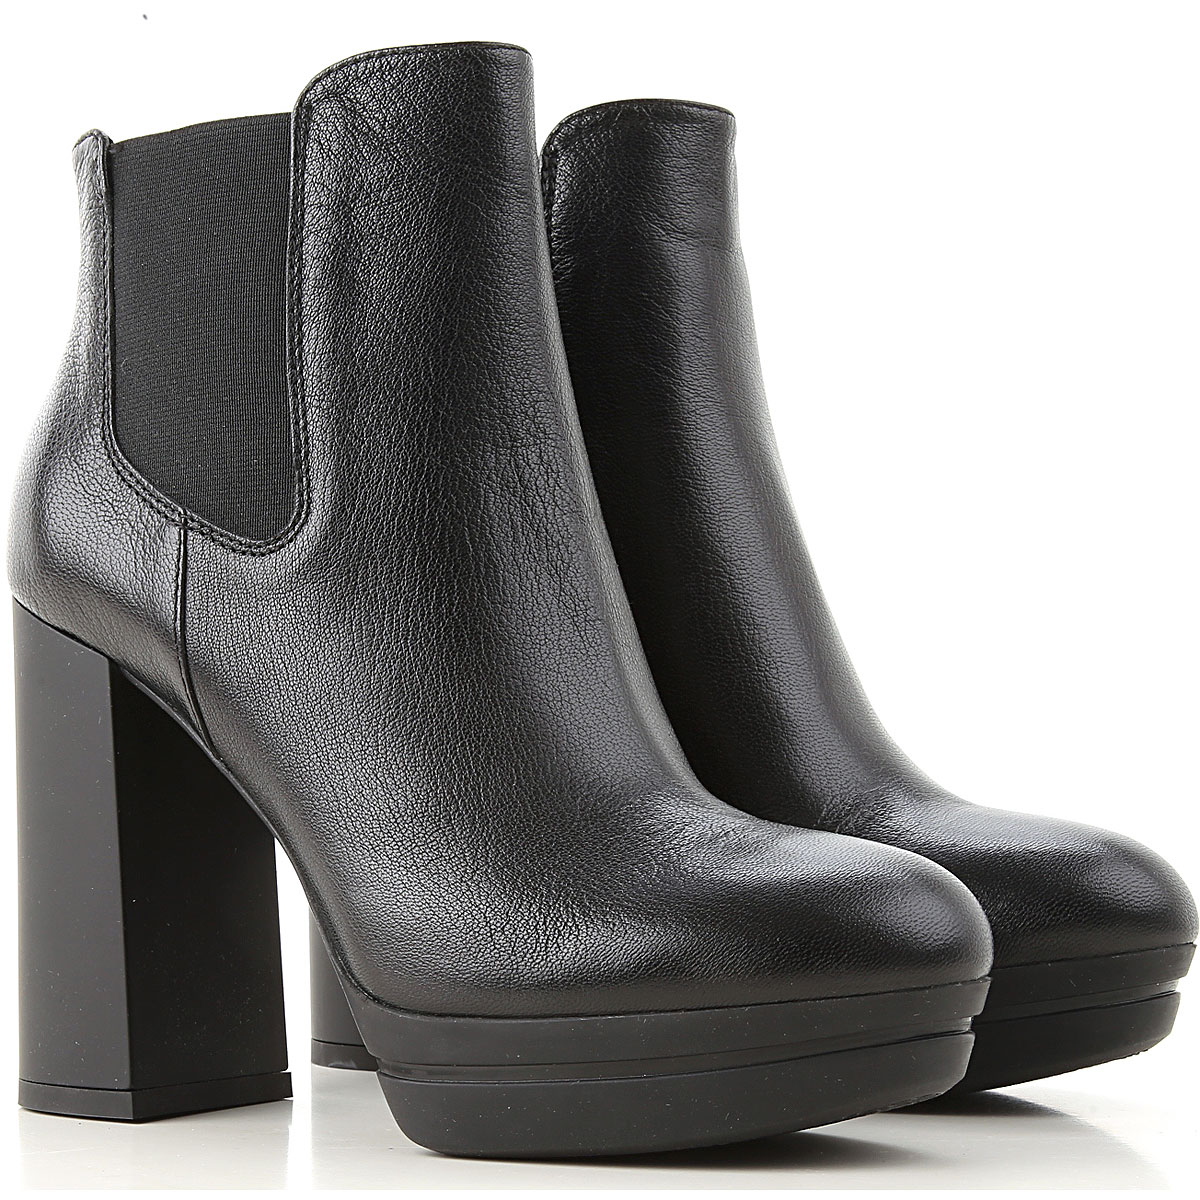 Hogan Chelsea Boots for Women On Sale, Black, Leather, 2019, 10 5.5 8 9